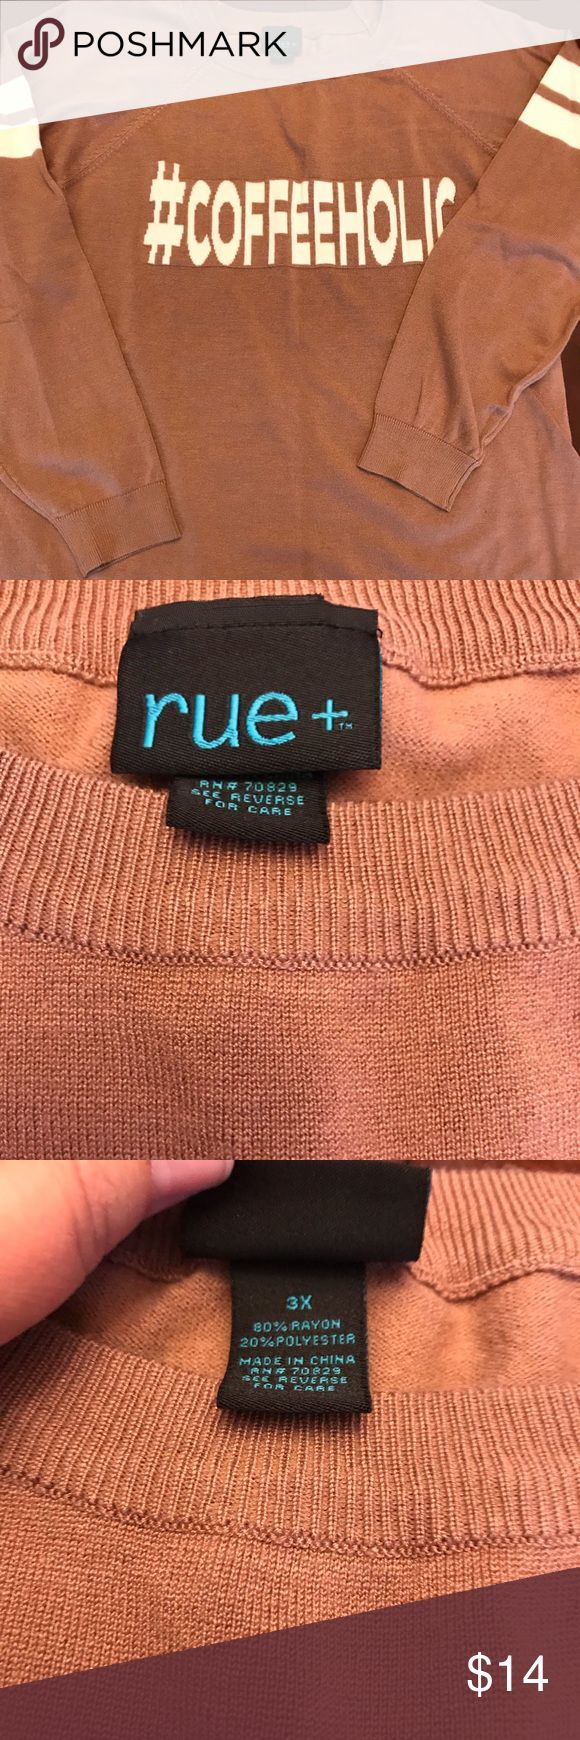 """Rue + Coffeeholic Mocha Colored Sweater Mocha color sweater Size 3x but when I measure the Bust was 22"""" and length from neck line to hem 22 3/4"""". Might be sized wrong from factory. Fits smaller than 3x.   Location P1 Rue + Sweaters Crew & Scoop Necks"""